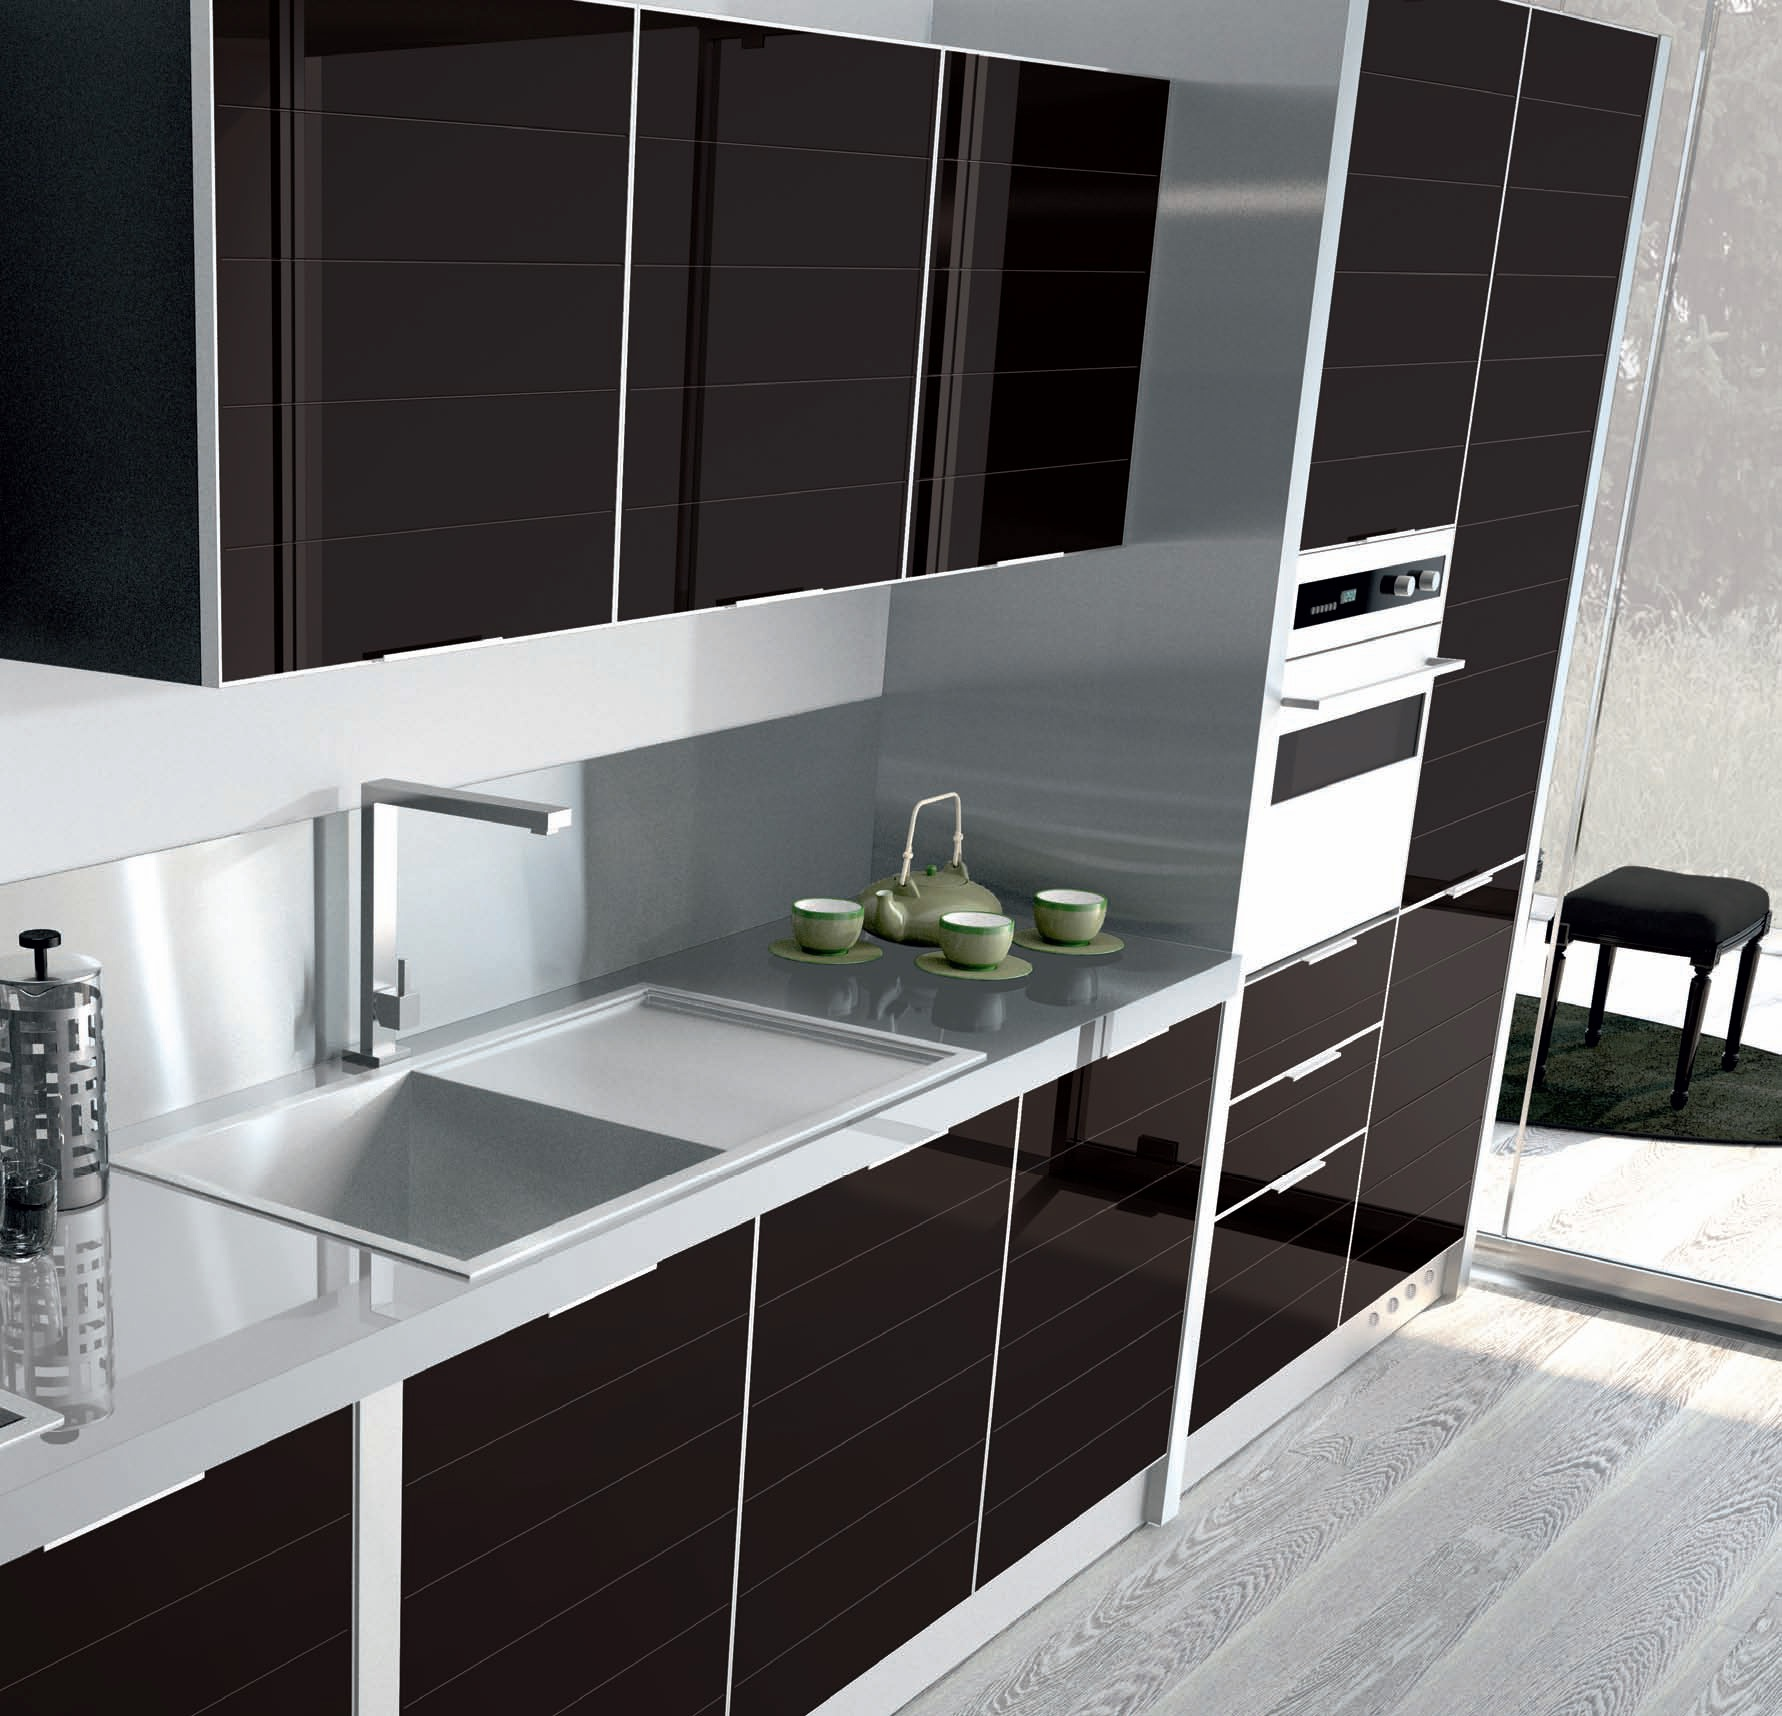 Italian Kitchen Sets Manufacturer: Kitchen Vitra Comp.2 From The Italian Manufacturer Ar-Tre